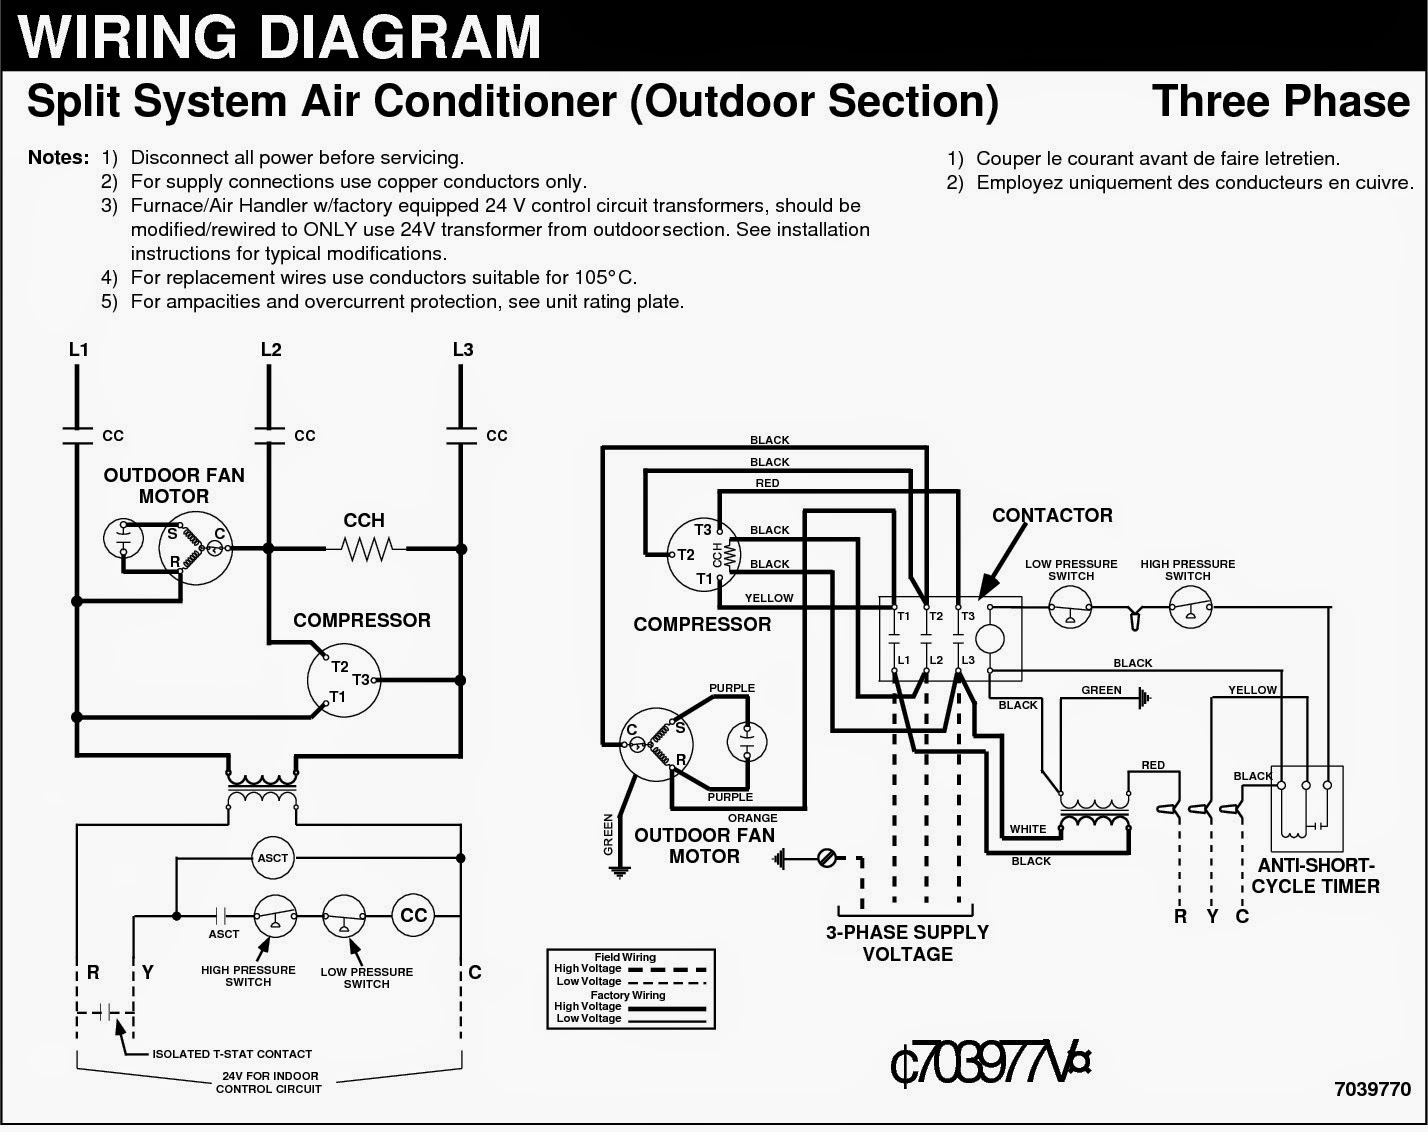 3+phase ac wiring diagram subaru ac wiring diagram \u2022 wiring diagrams j Split Air Conditioner Wiring Diagram at crackthecode.co